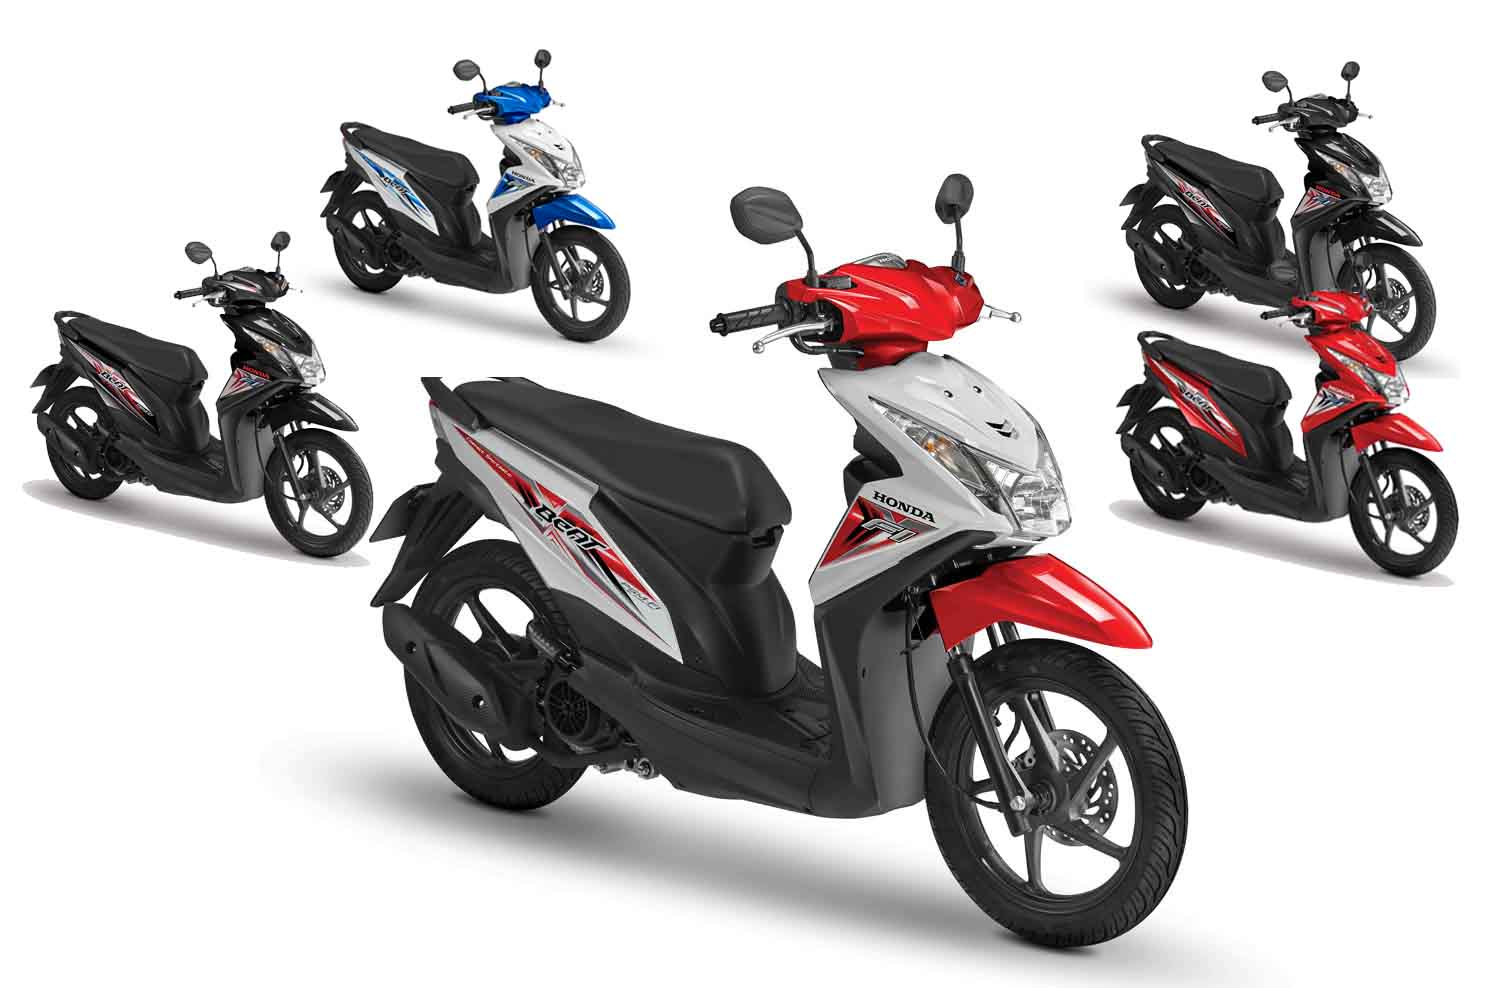 Prize of honda motorcycles philippines - It S Back To School Again And As Much As We Want To Be Excited For Our Kids The End Of Summer Time In The Philippines Would Also Mean The Usual Traffic